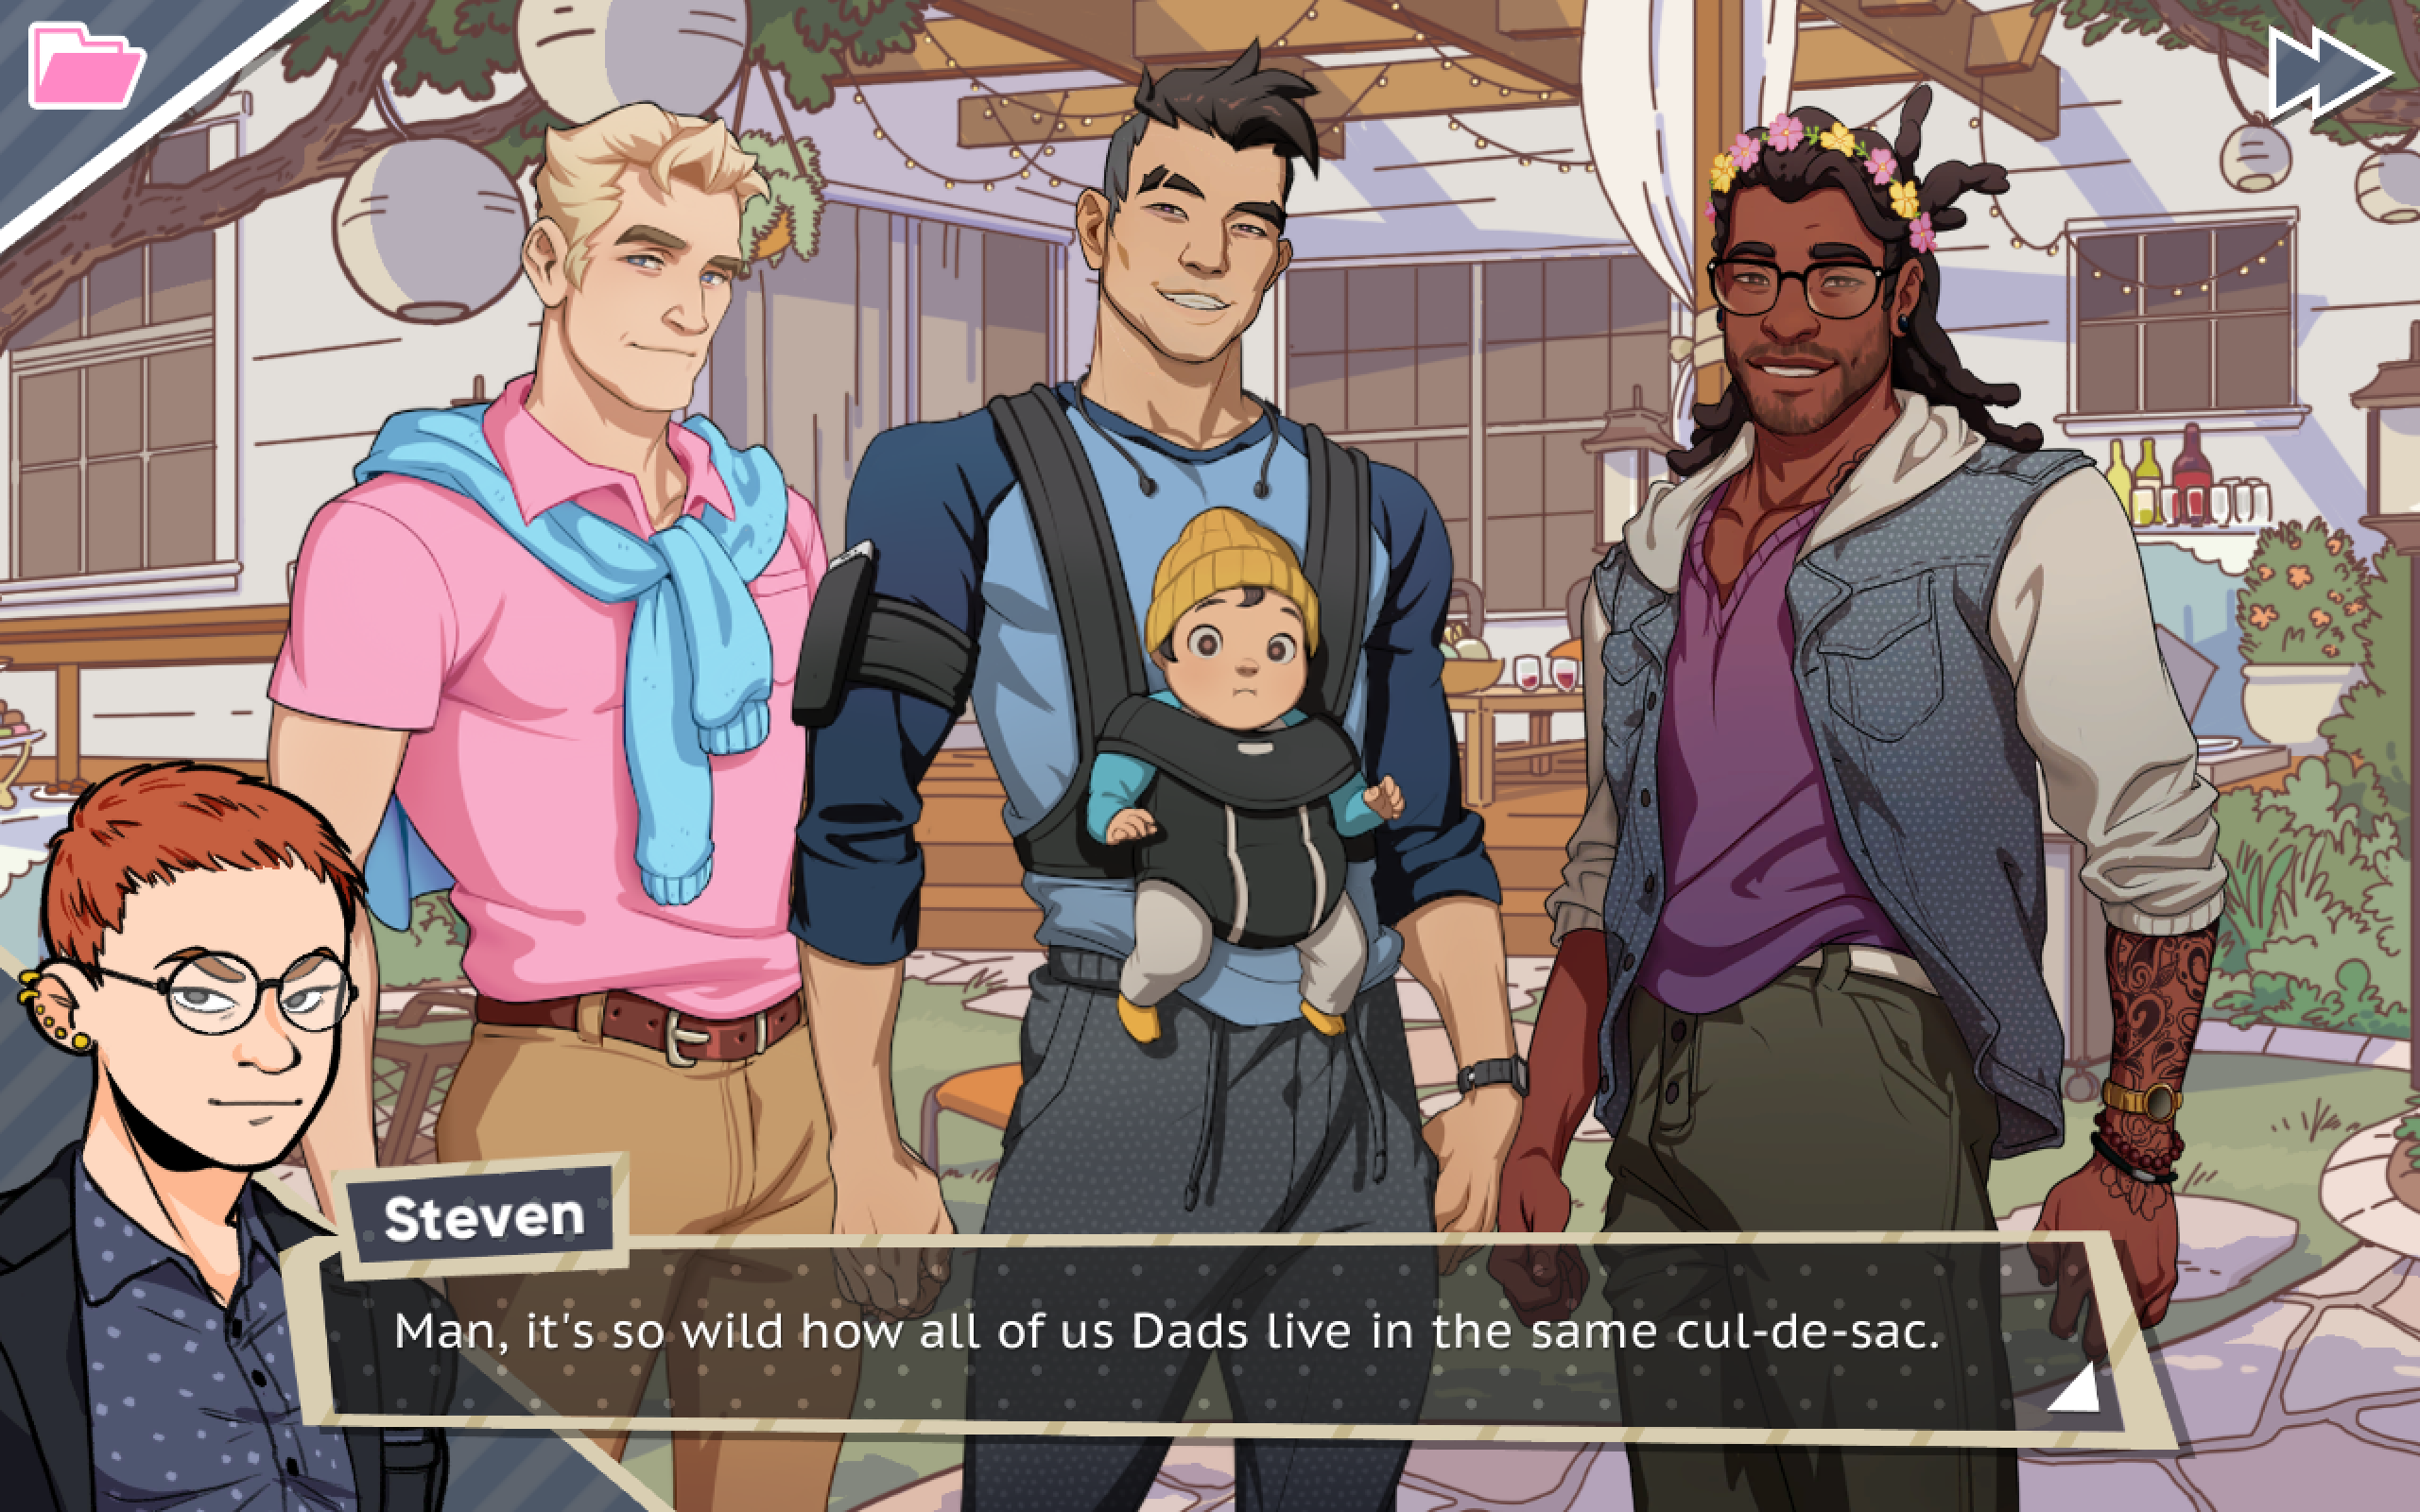 dream dating your dad In dream daddy, you are also one of those dads, and they want to date you the game works like most other dating simulations, a genre that's been around for over 30 years, but doesn't often get mainstream coverage – usually, you follow a story, meet potential partners, chat to them, date them and see if you can end up with the nicest.